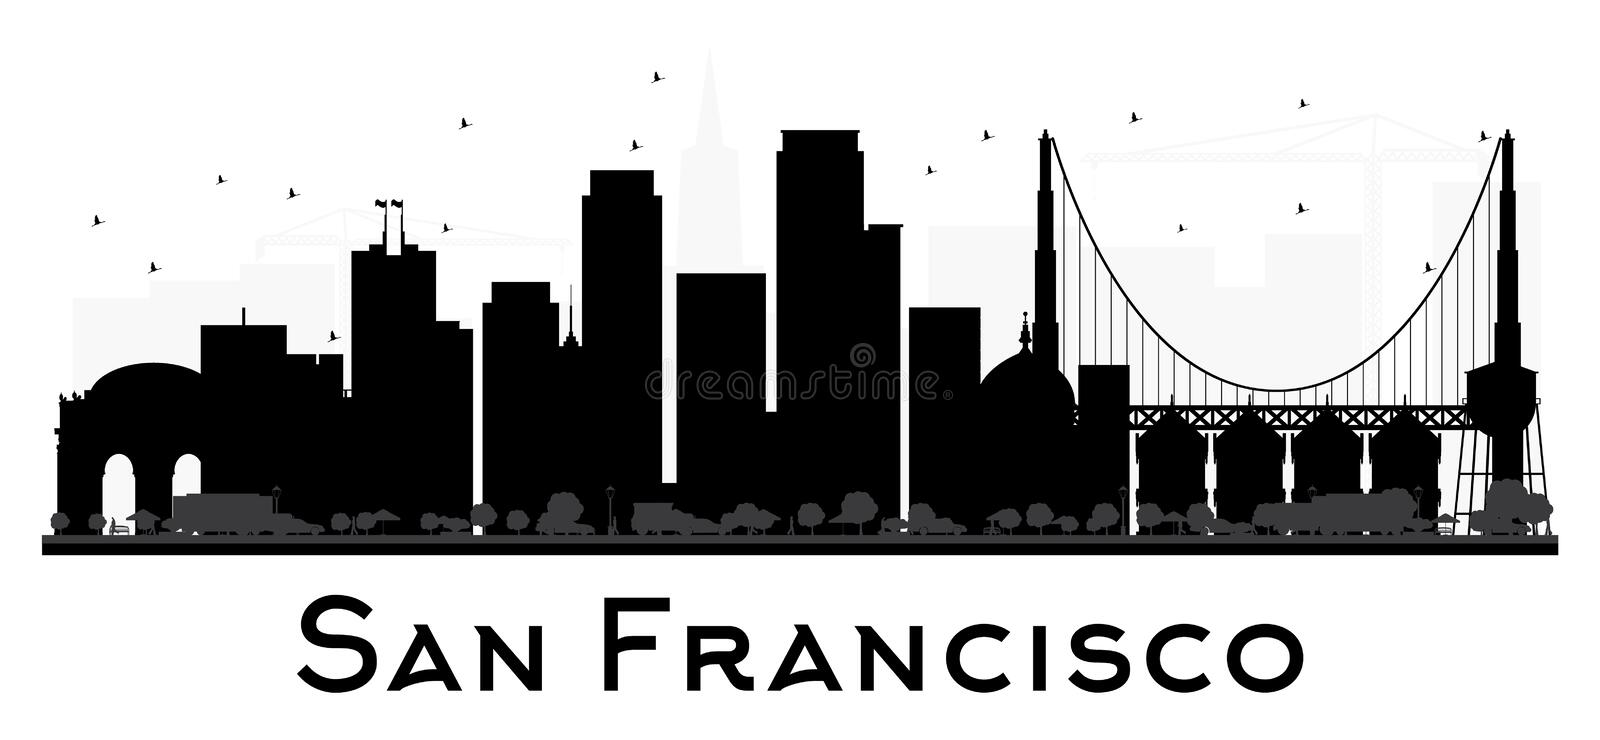 San Francisco City skyline black and white silhouette. stock illustration